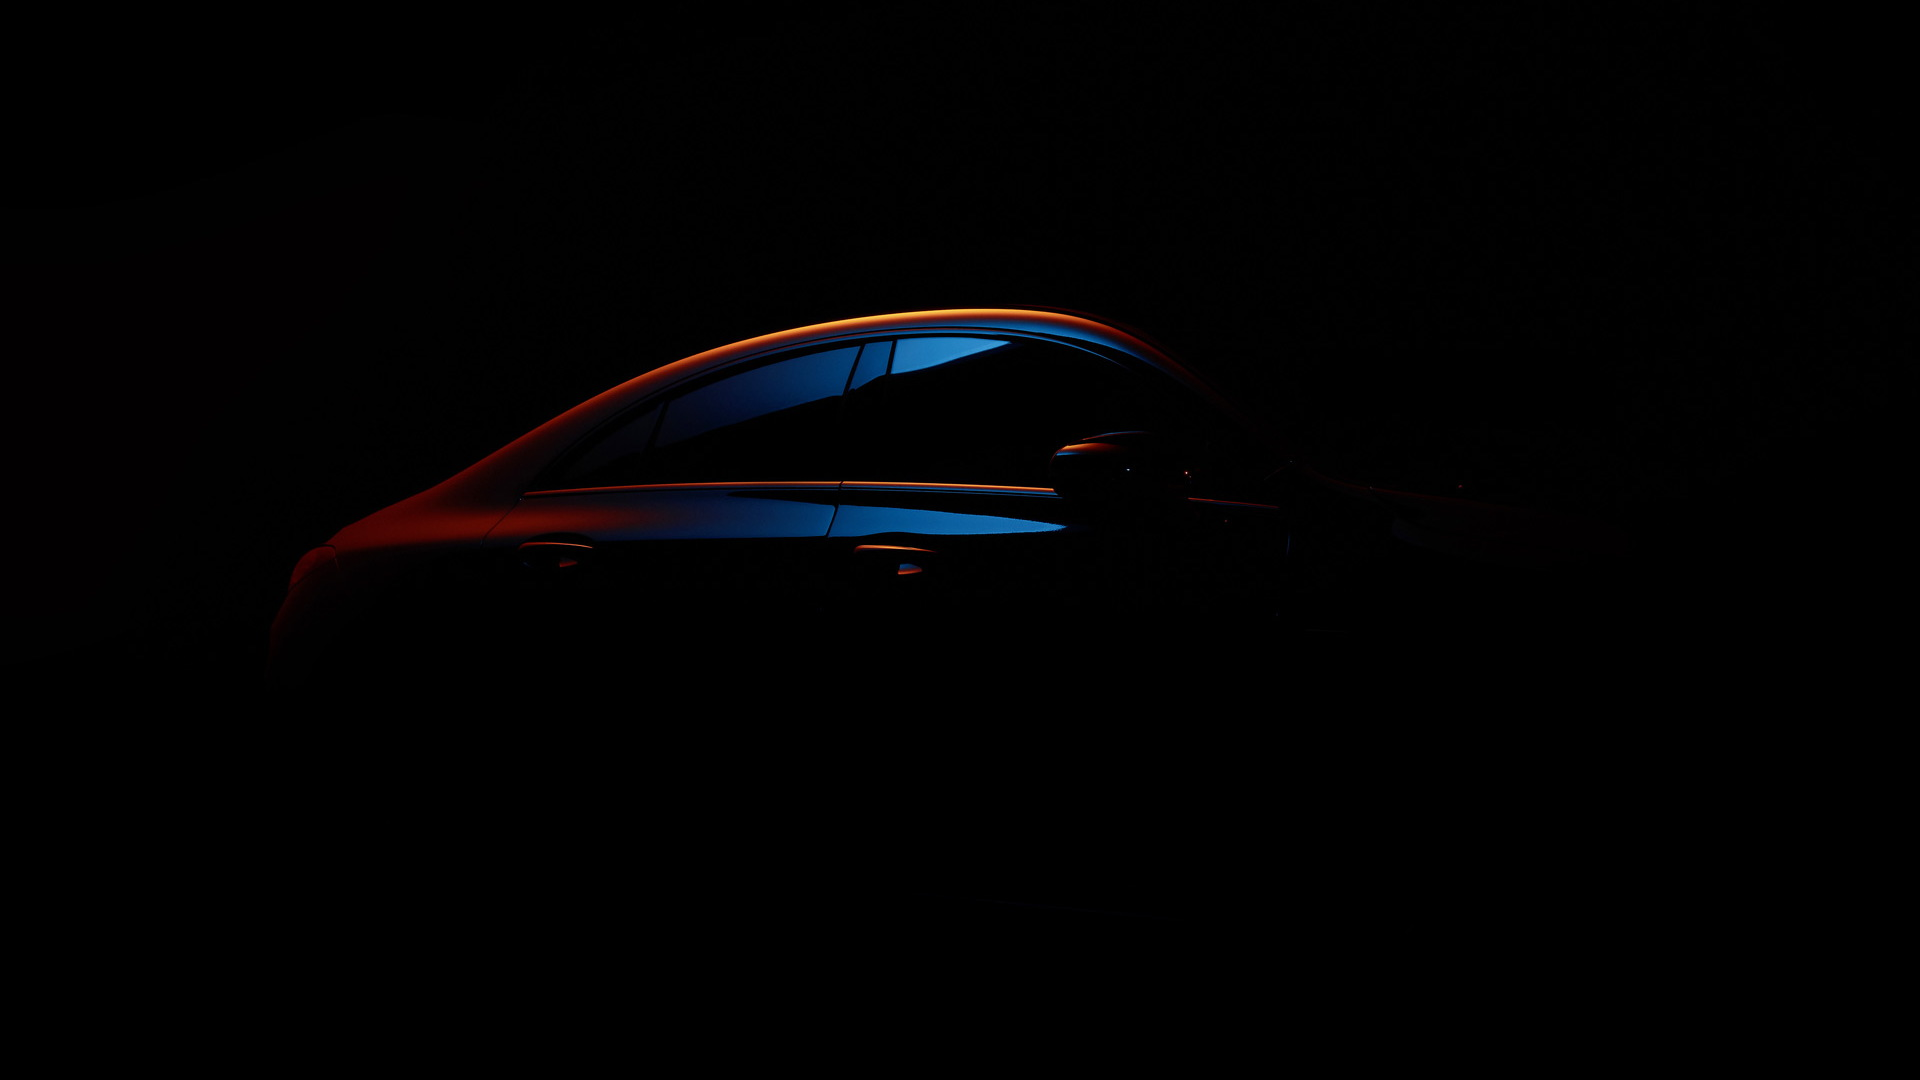 Teaser for 2020 Mercedes-Benz CLA debuting at 2019 CES